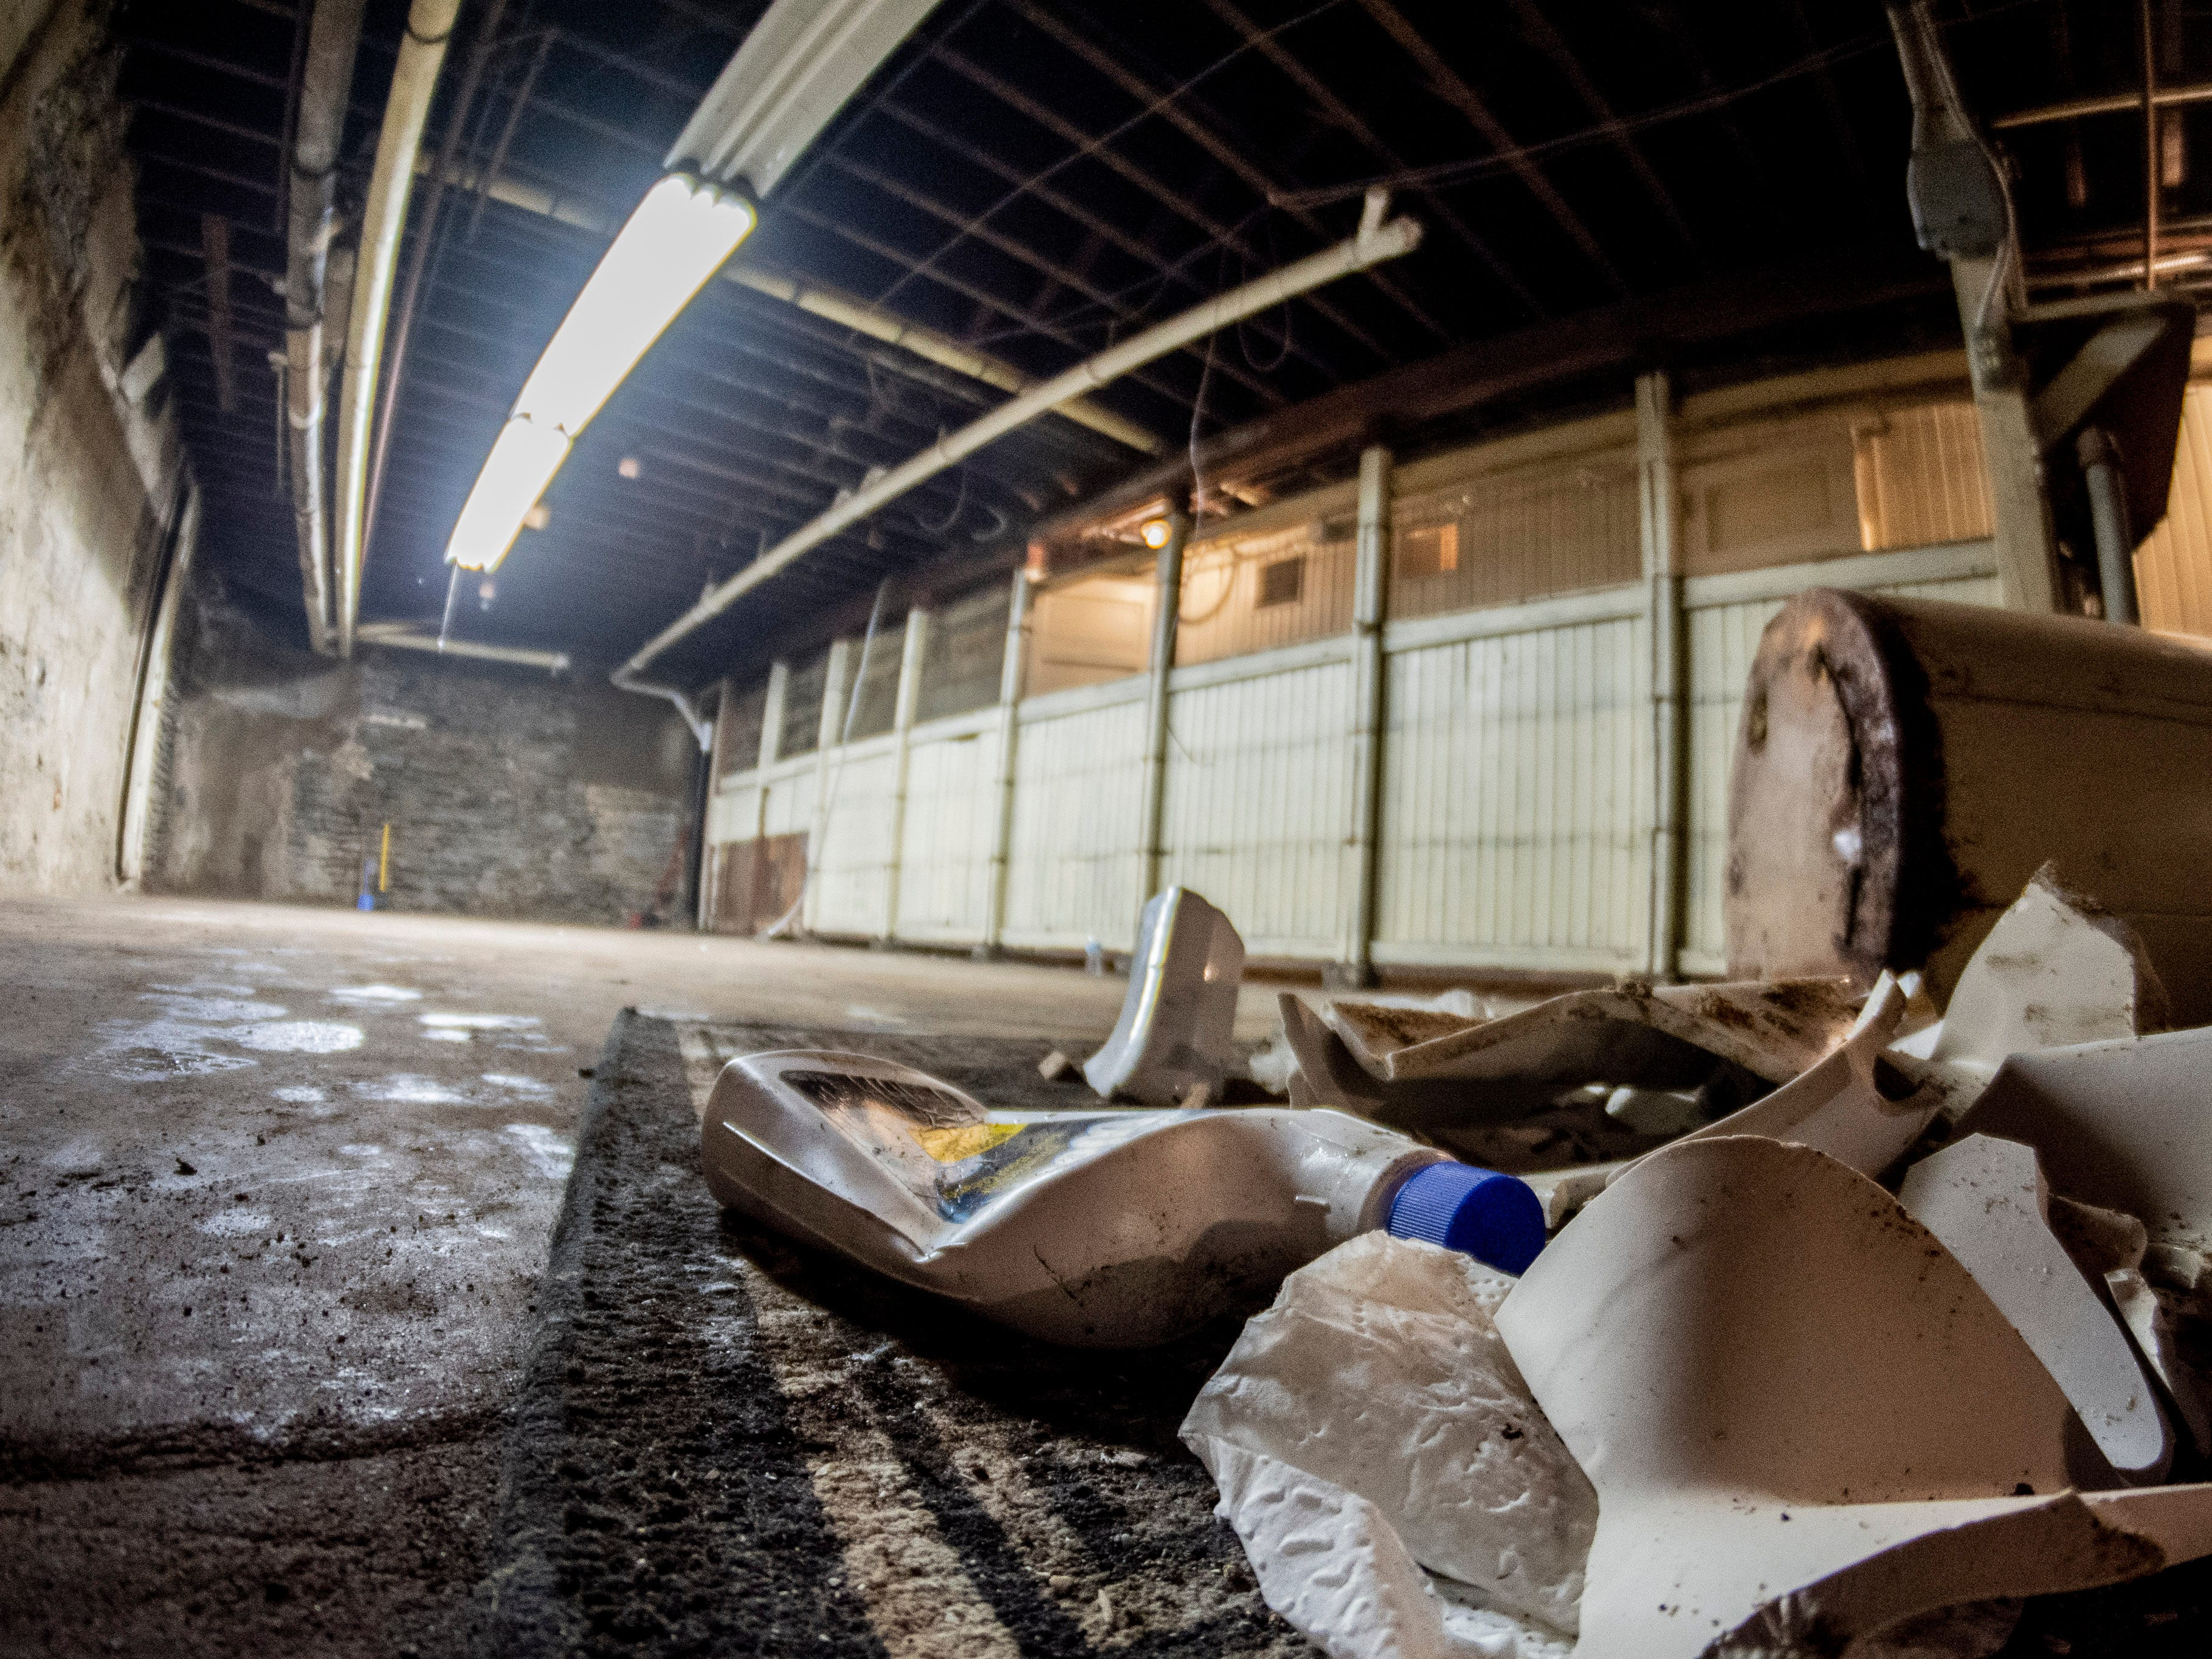 Trash is gathered into a pile in the basement of the Readmore building in downtown Richmond following demoliton work on Sept. 4, 2018.